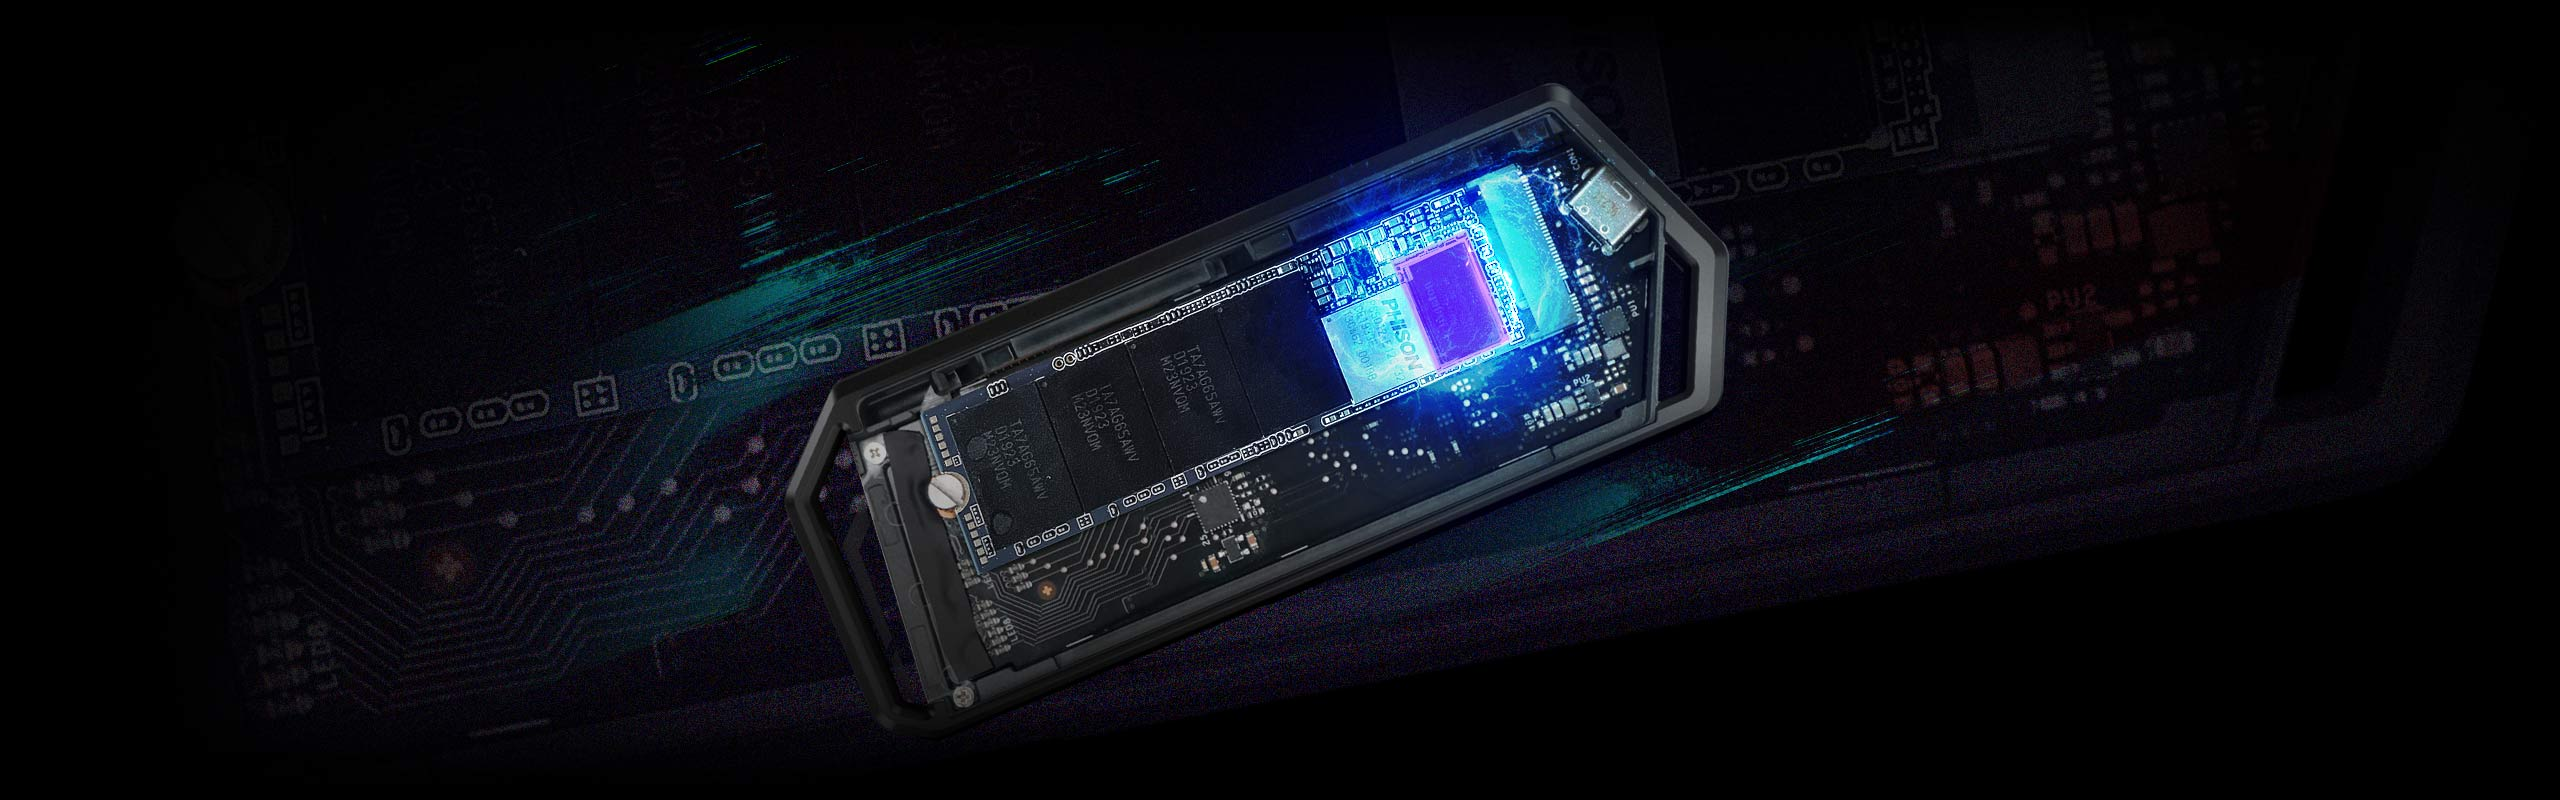 Internal look of ROG Strix Arion S500 with a DRAM and large SLC cache